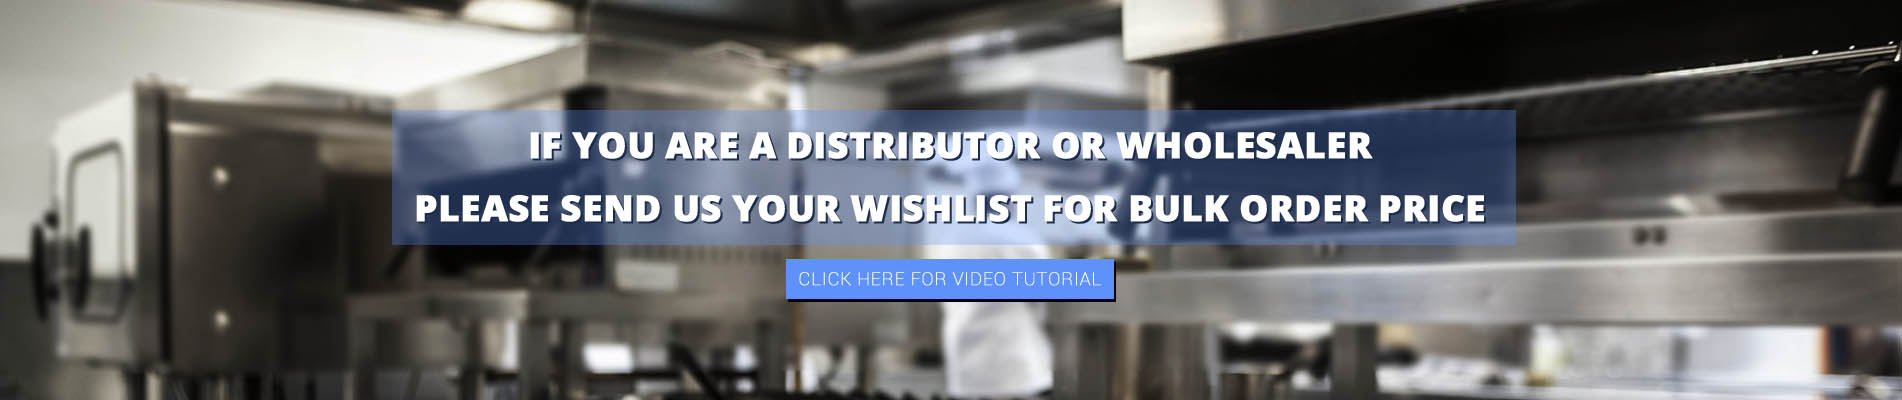 How to send your wishlist for bulk order request